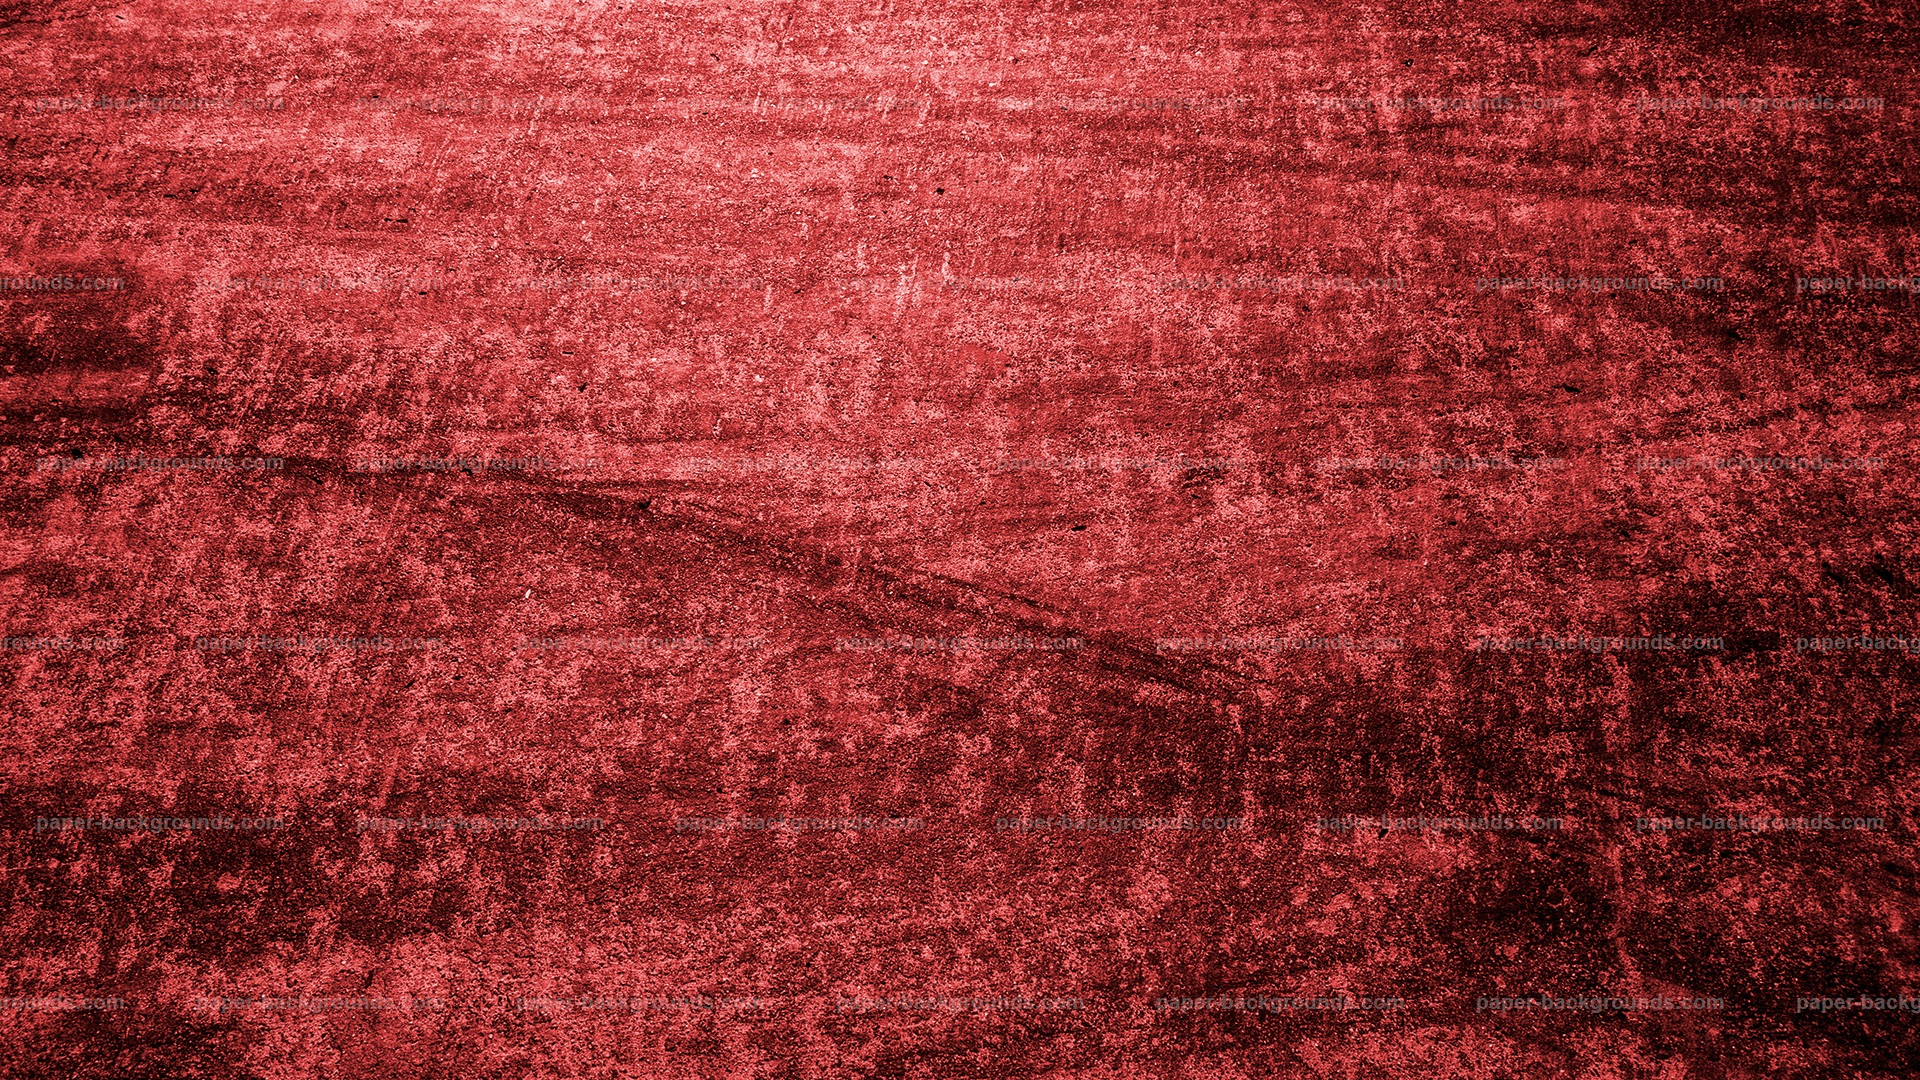 Red Grunge Background Red Grunge Concrete Texture Hd